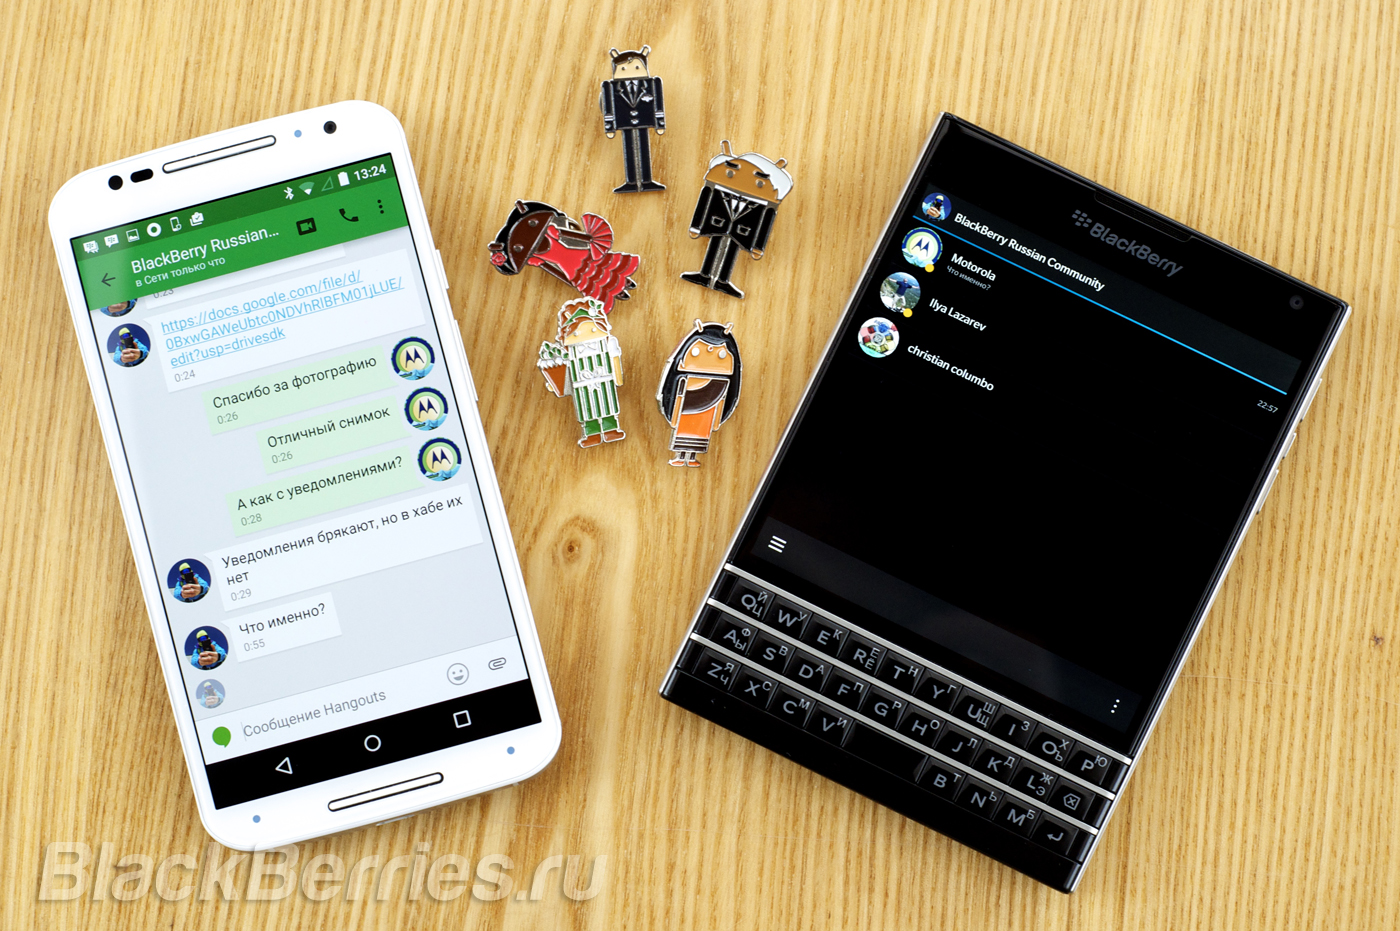 BlackBerry-Motorola-Hg10-2